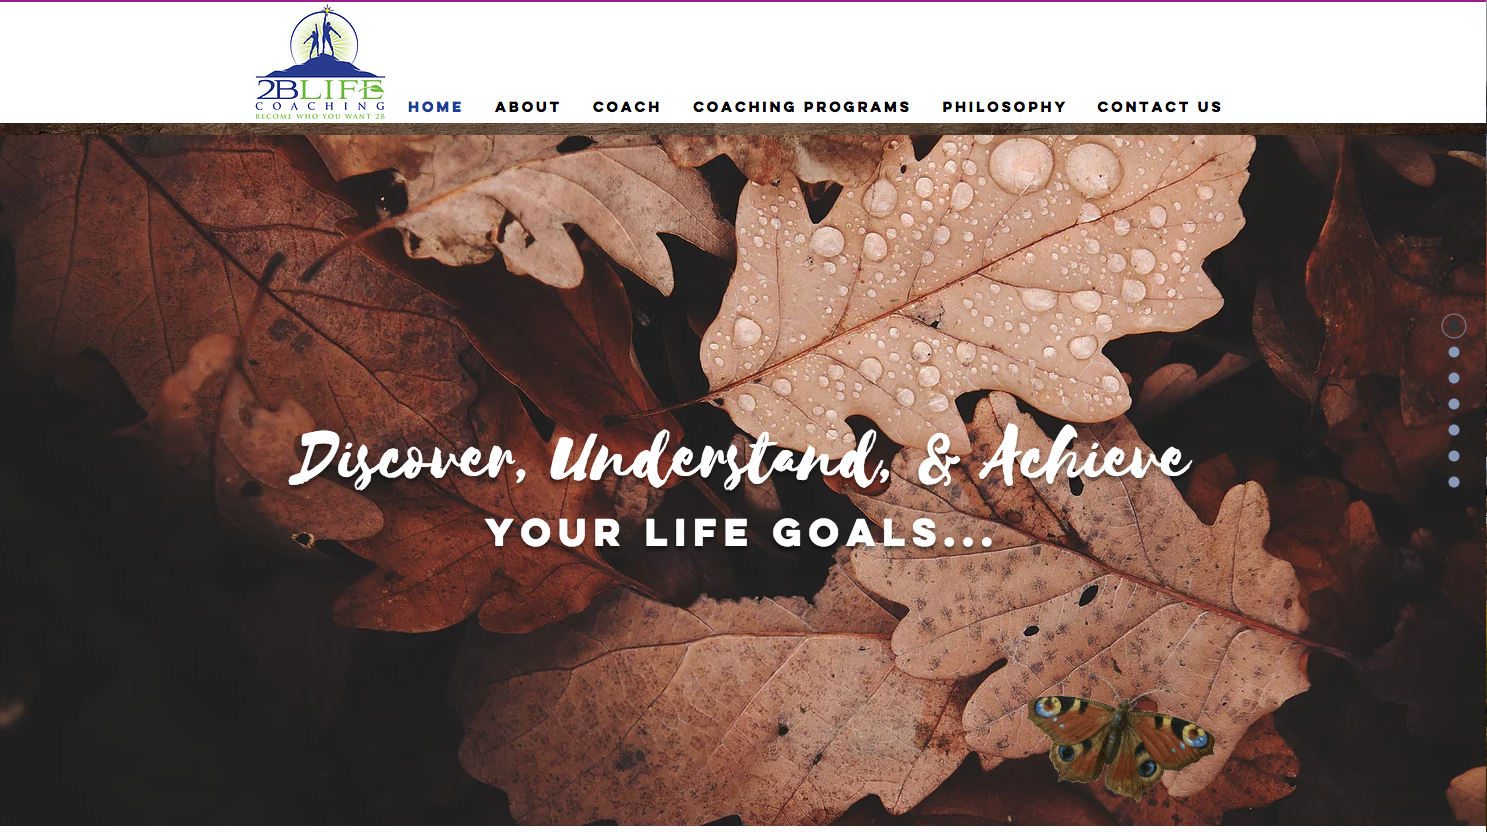 Clifton Designs website designer